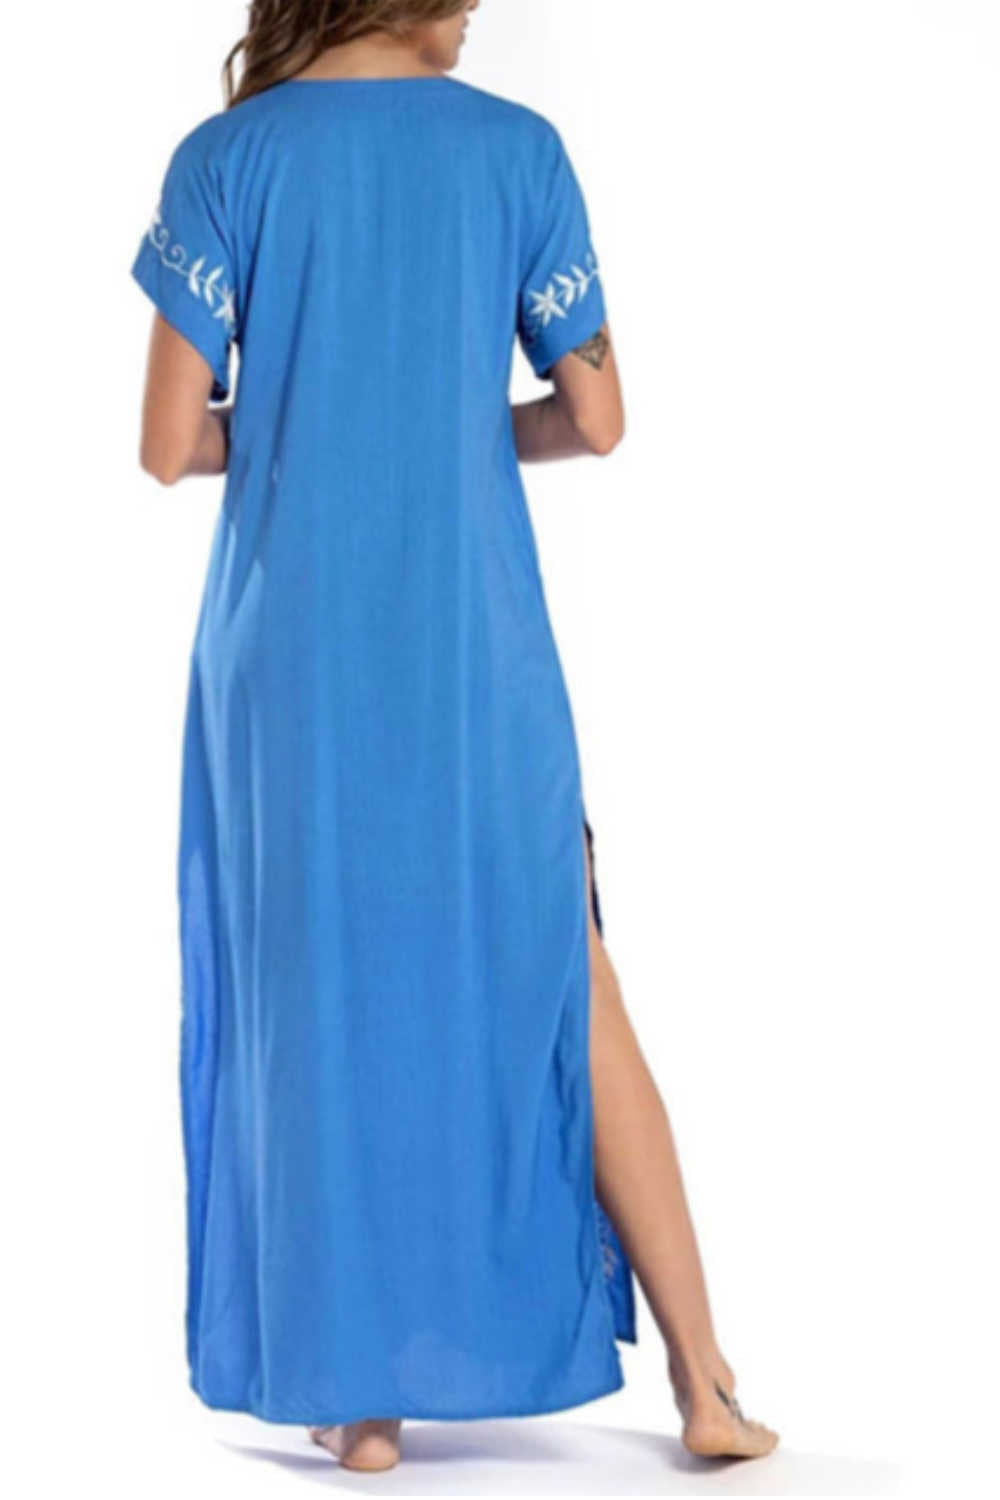 cotton-kaftan-maxi-dress-blue-white-embroidered